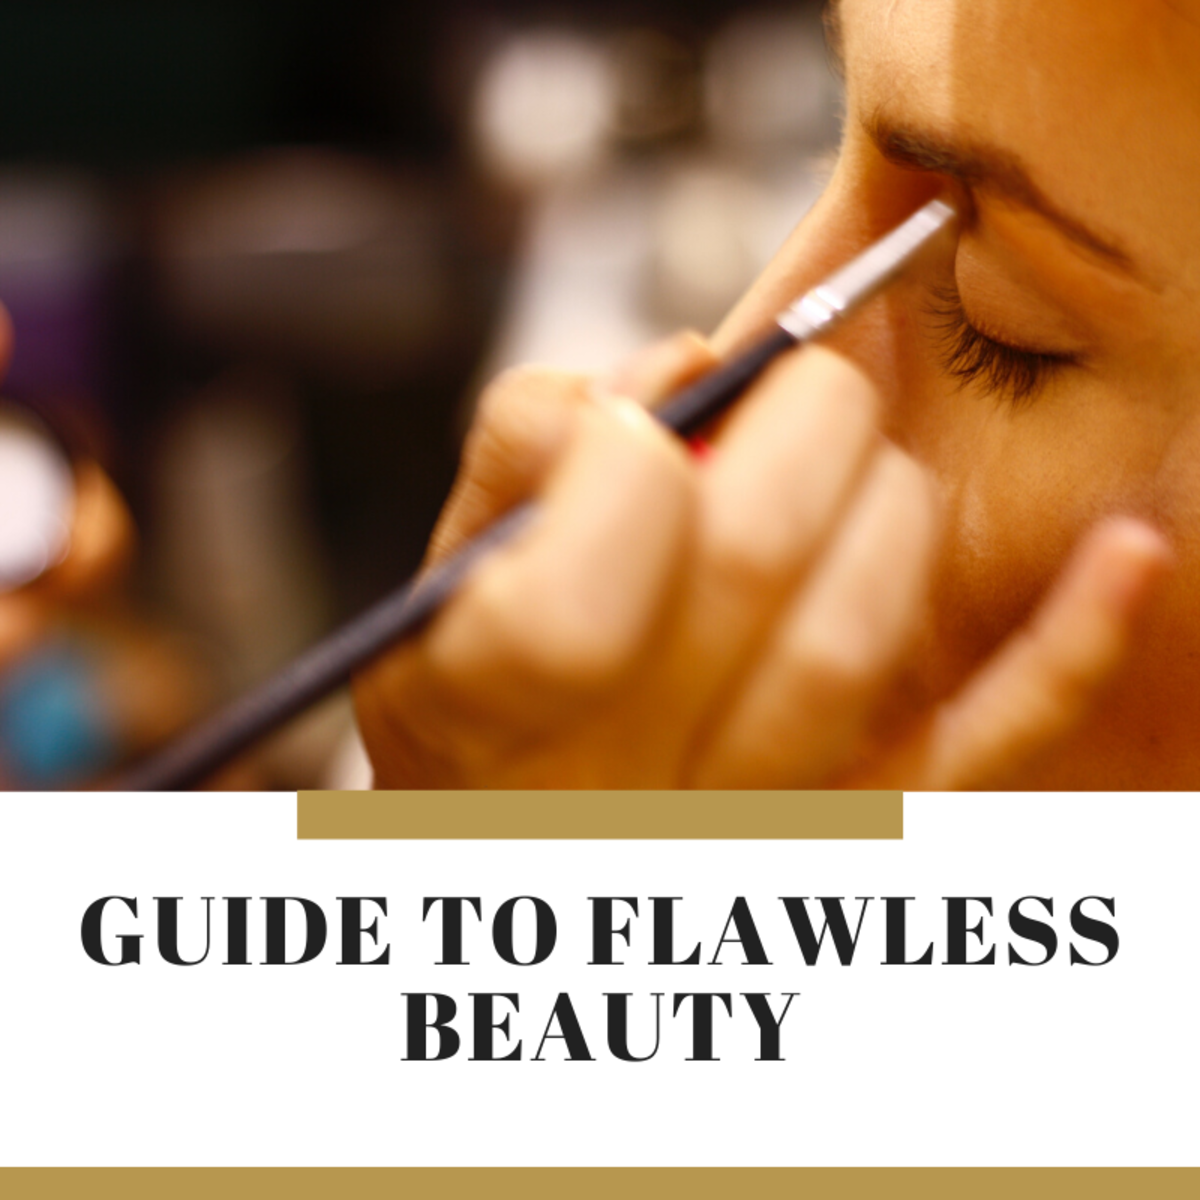 This guide to flawless beauty will have you looking great.